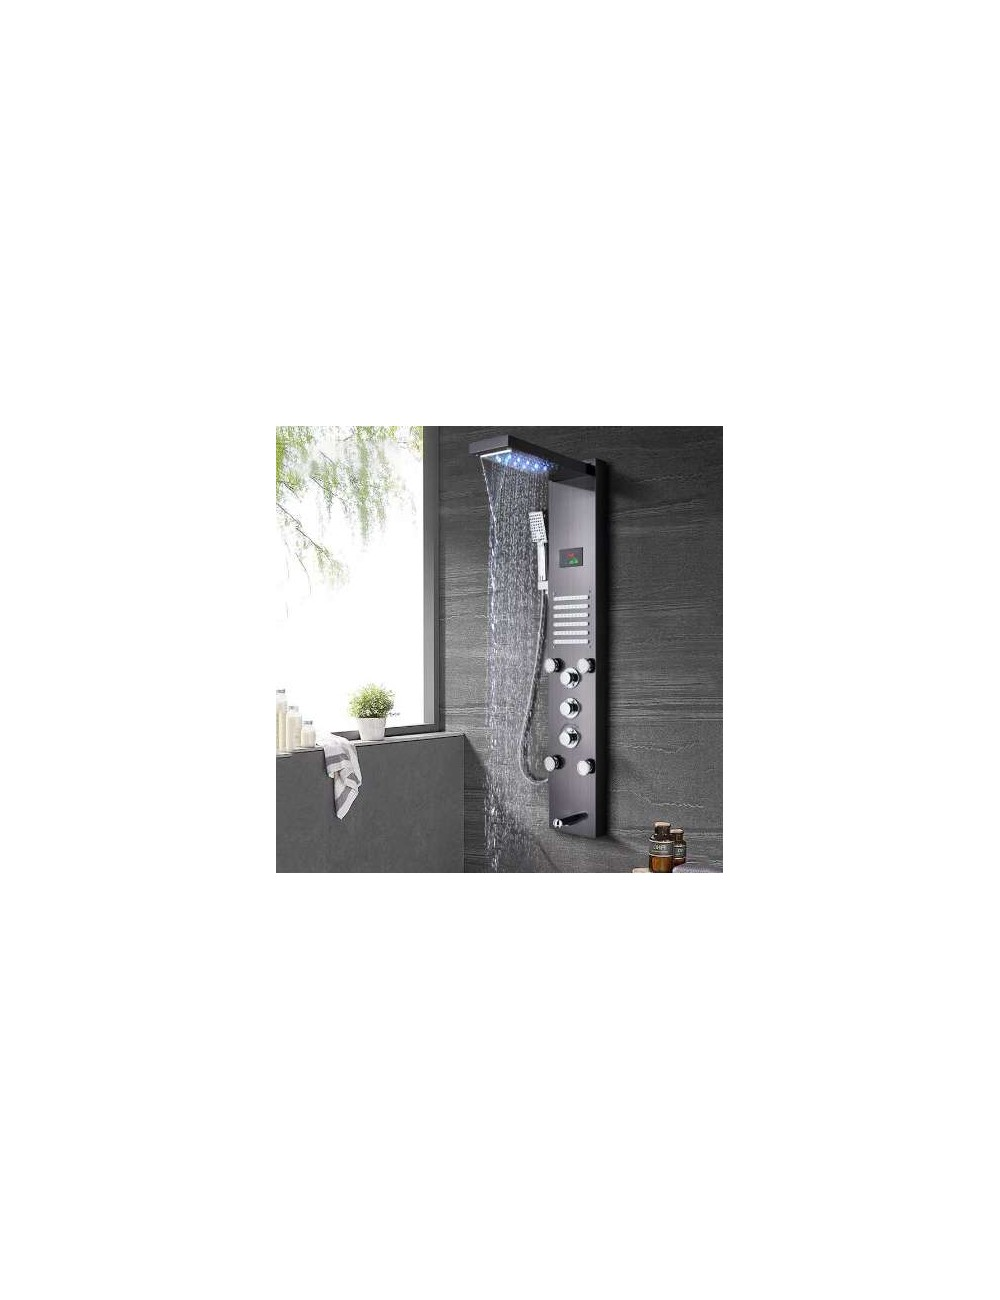 nevio panneau de douche led thermostatique salledebains. Black Bedroom Furniture Sets. Home Design Ideas